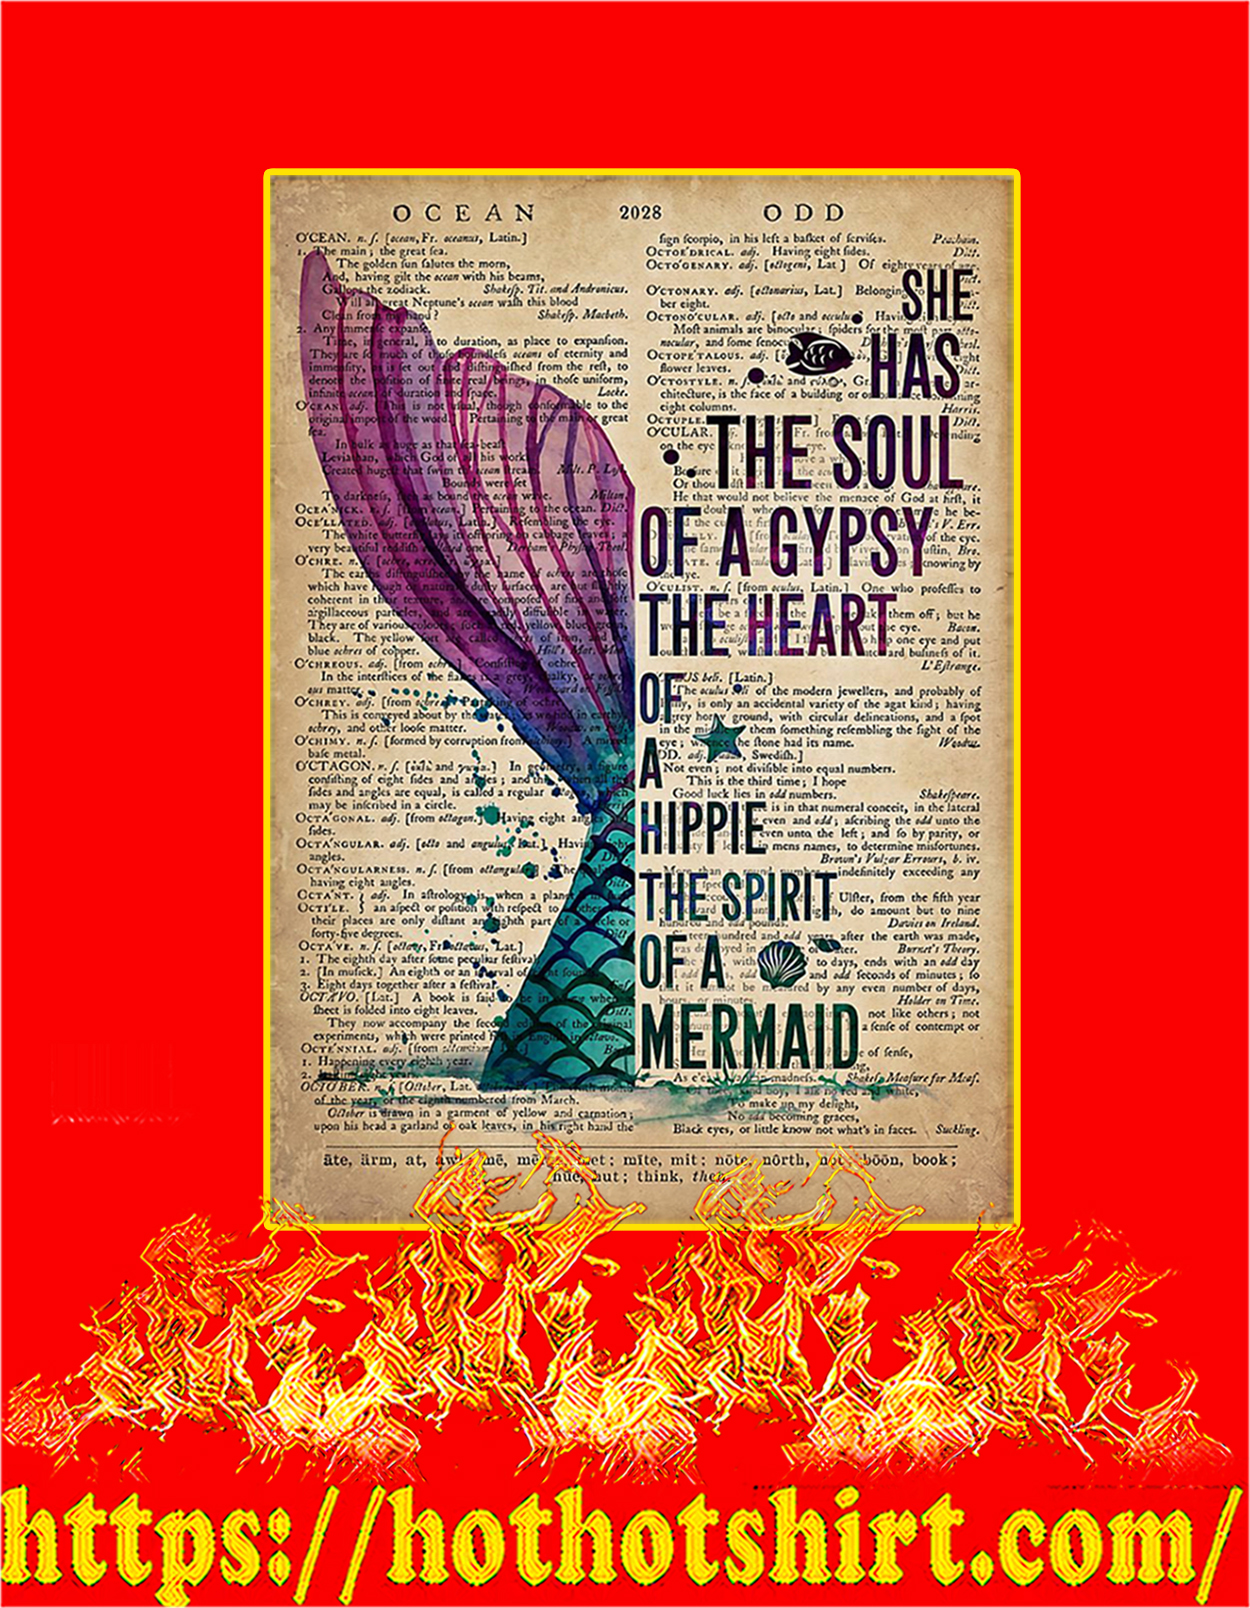 Mermaid She has the soul of a gypsy poster - A3